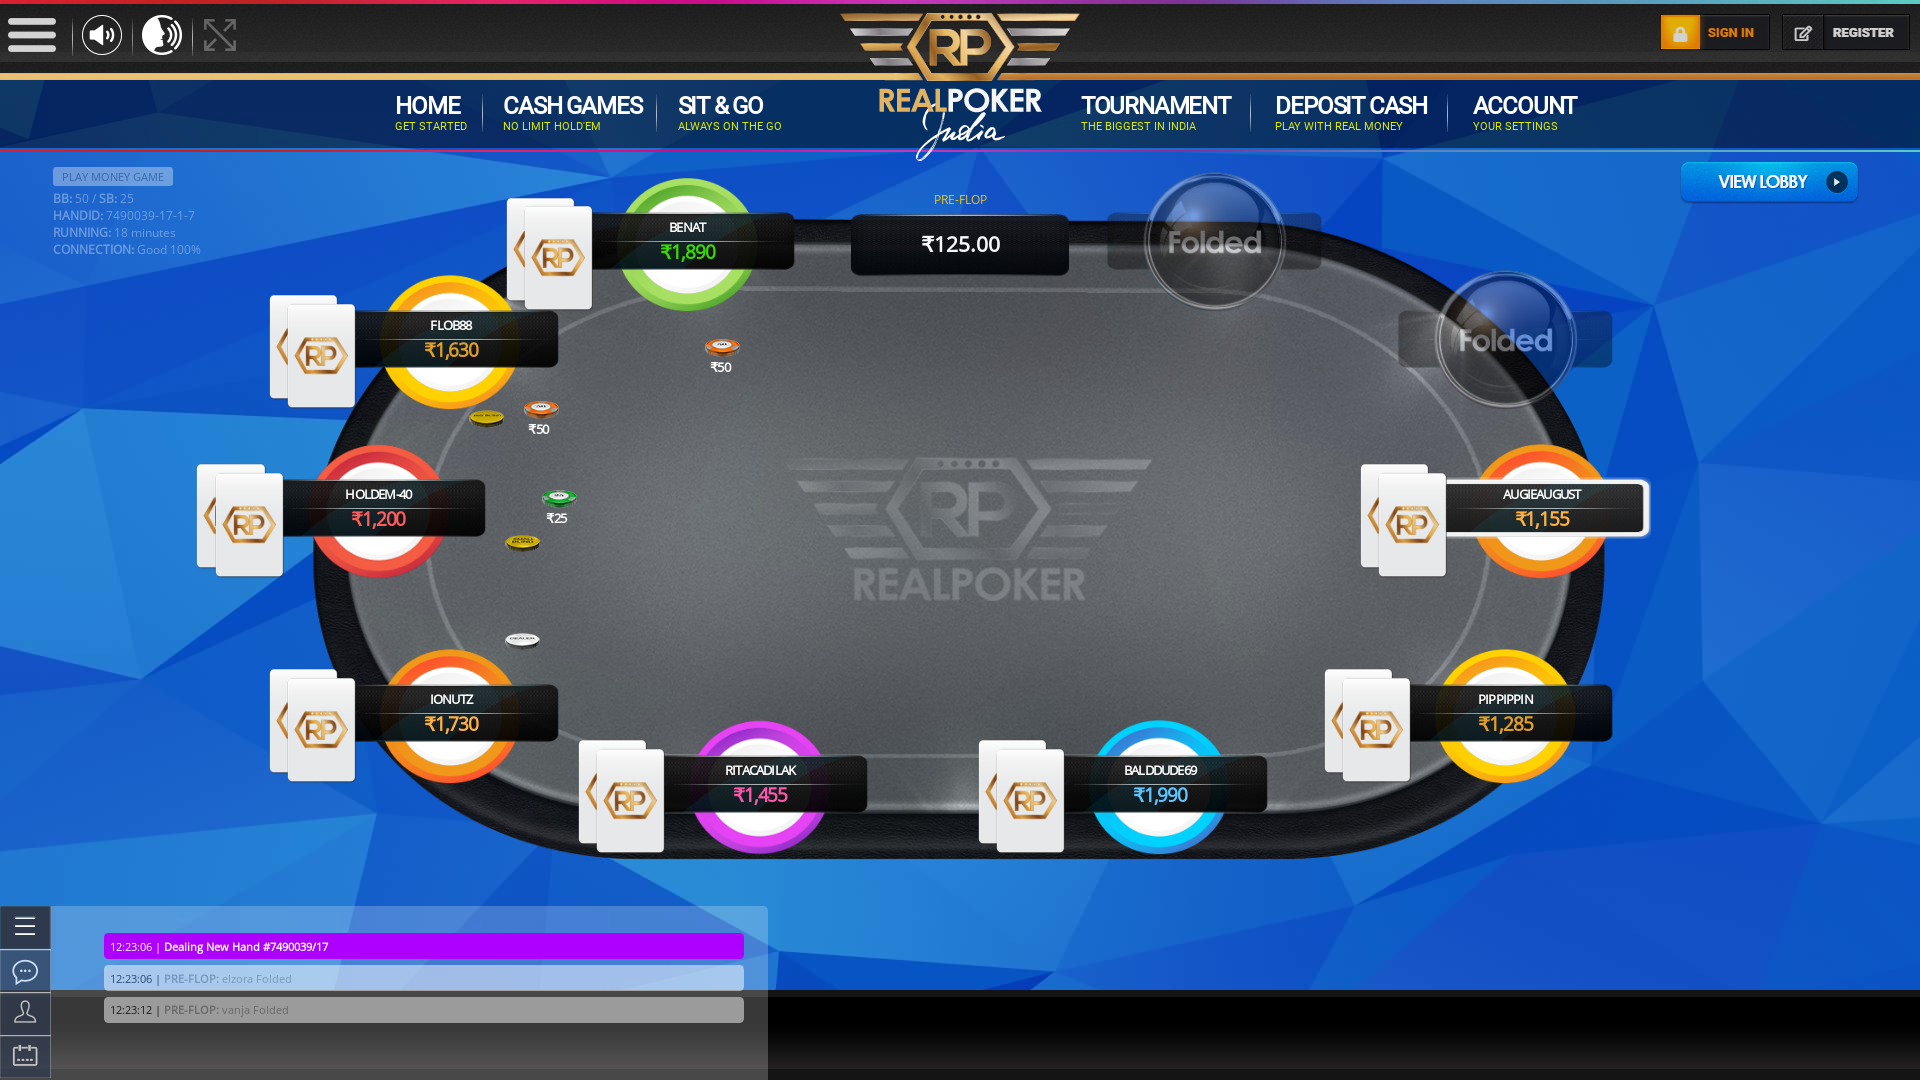 10 player texas holdem table at real poker with the table id 7490039